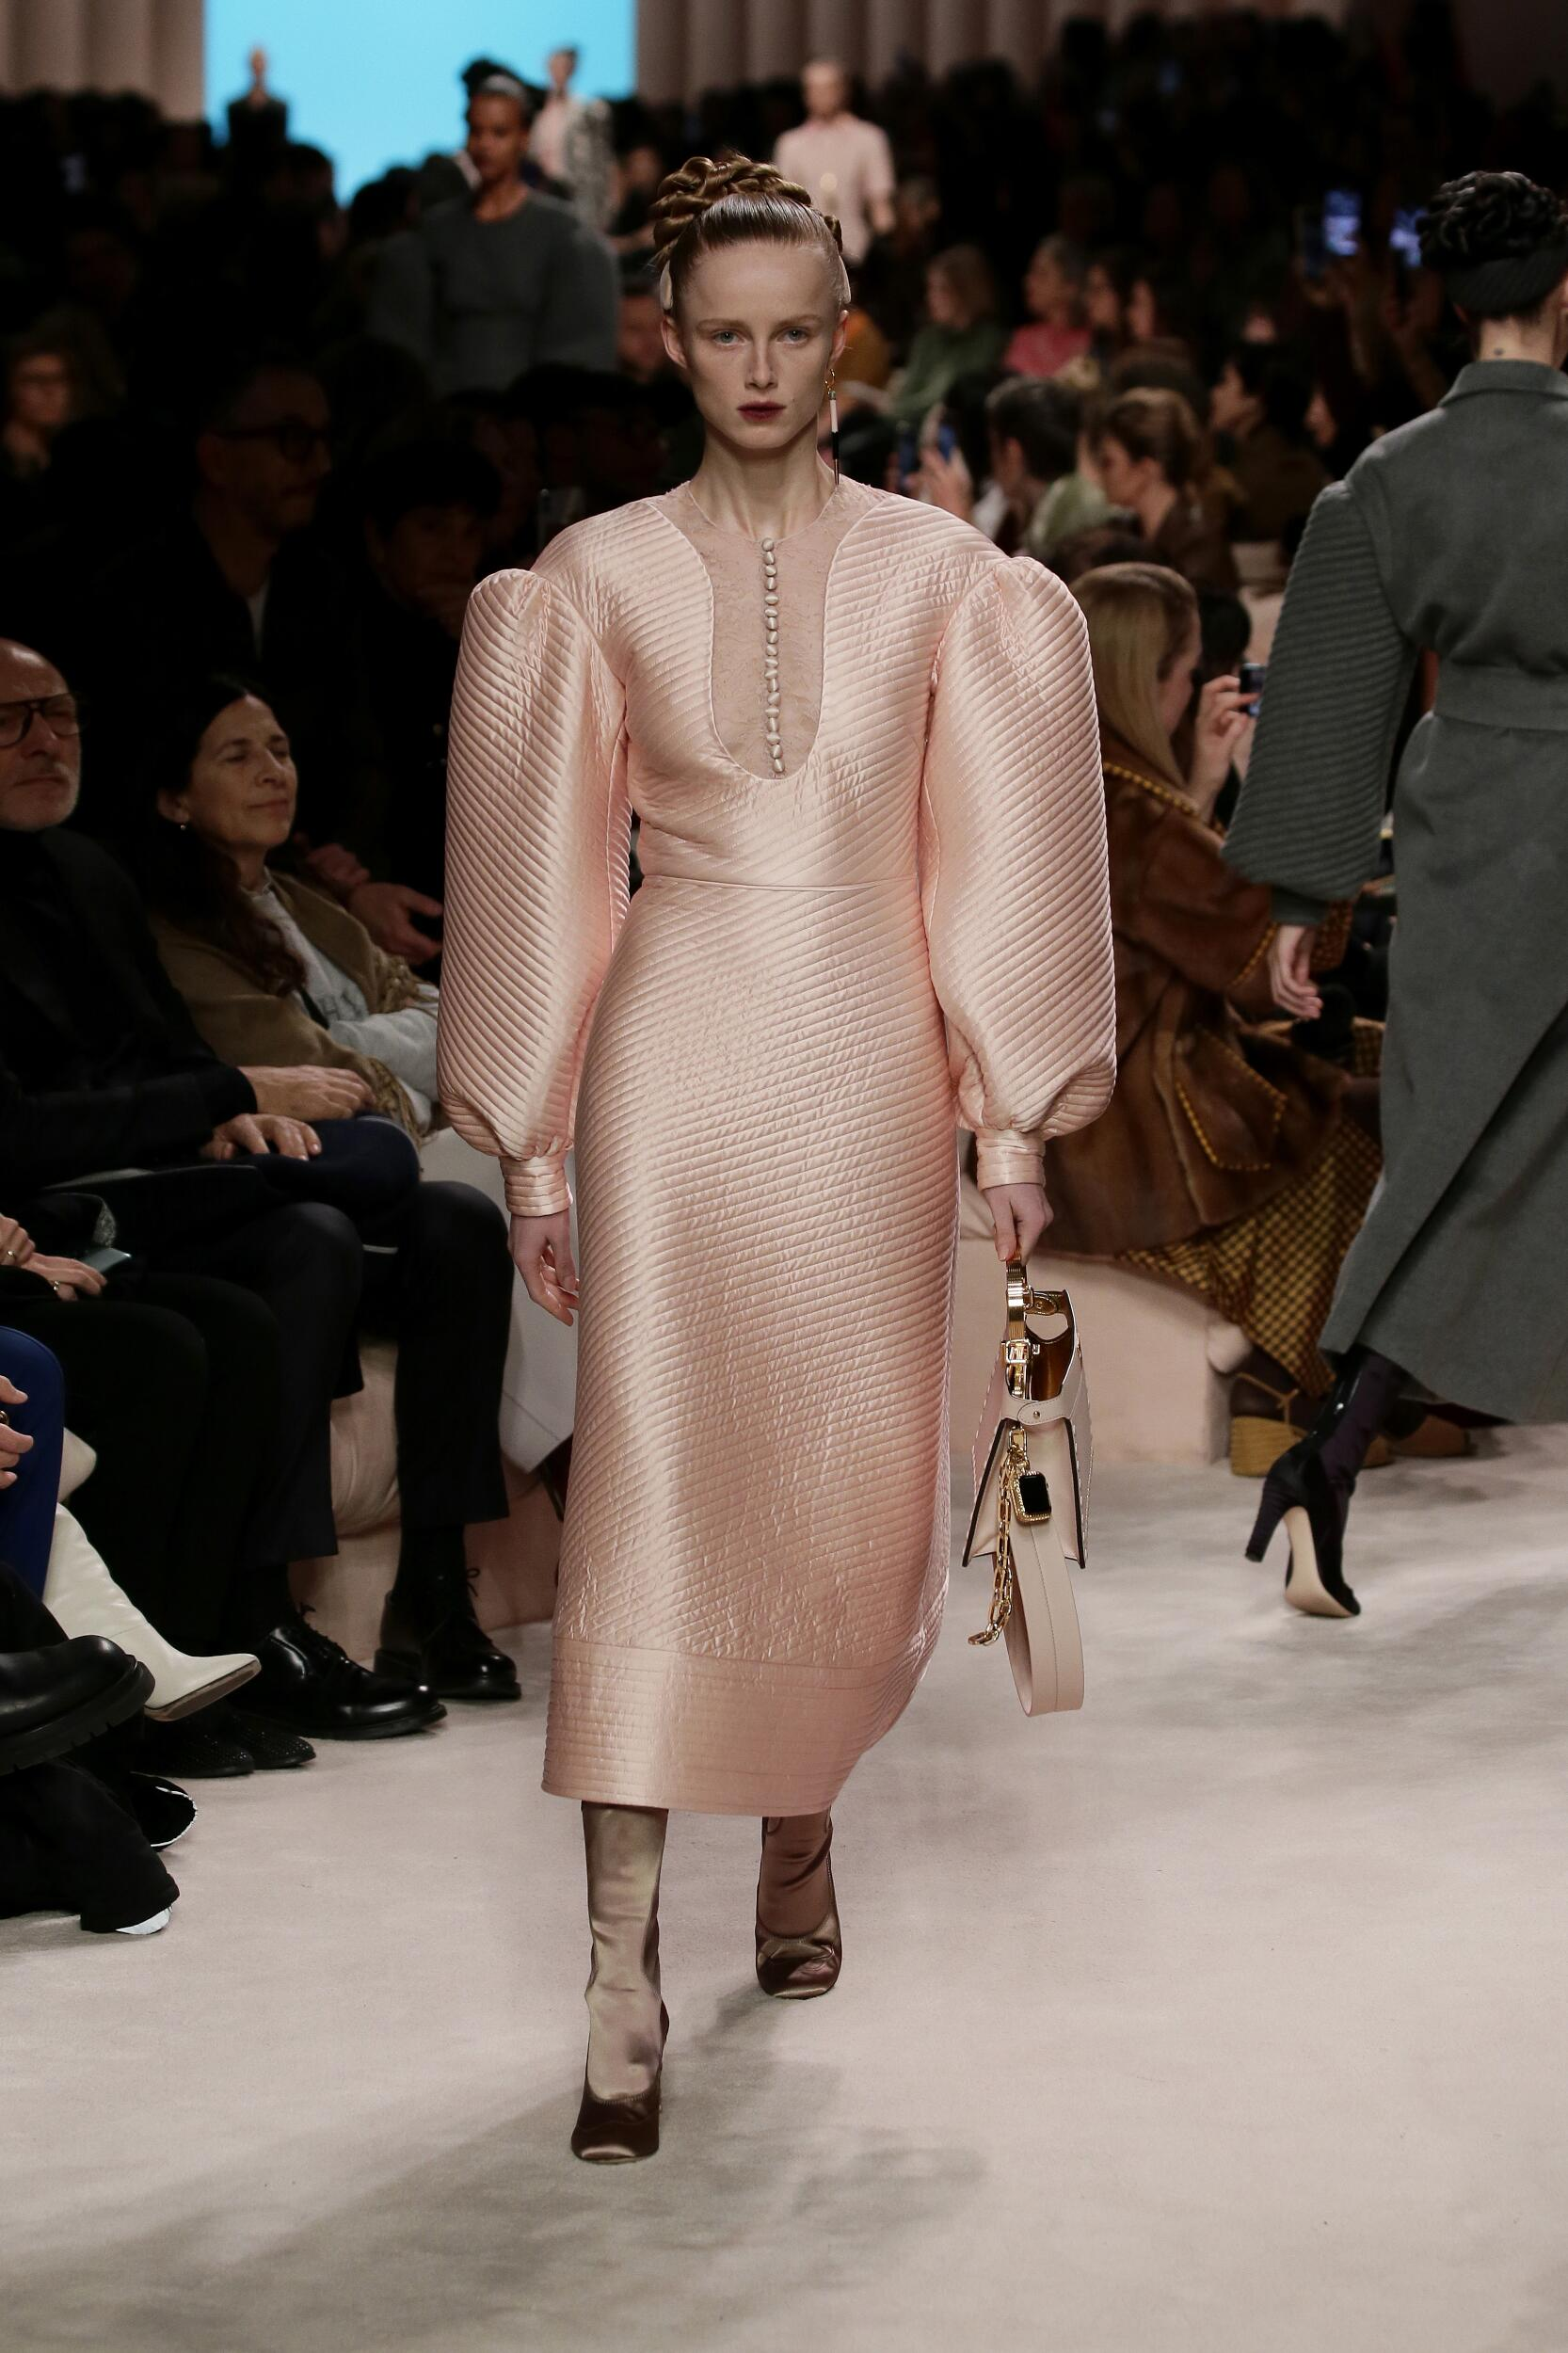 FW 2020-21 Fendi Fashion Show